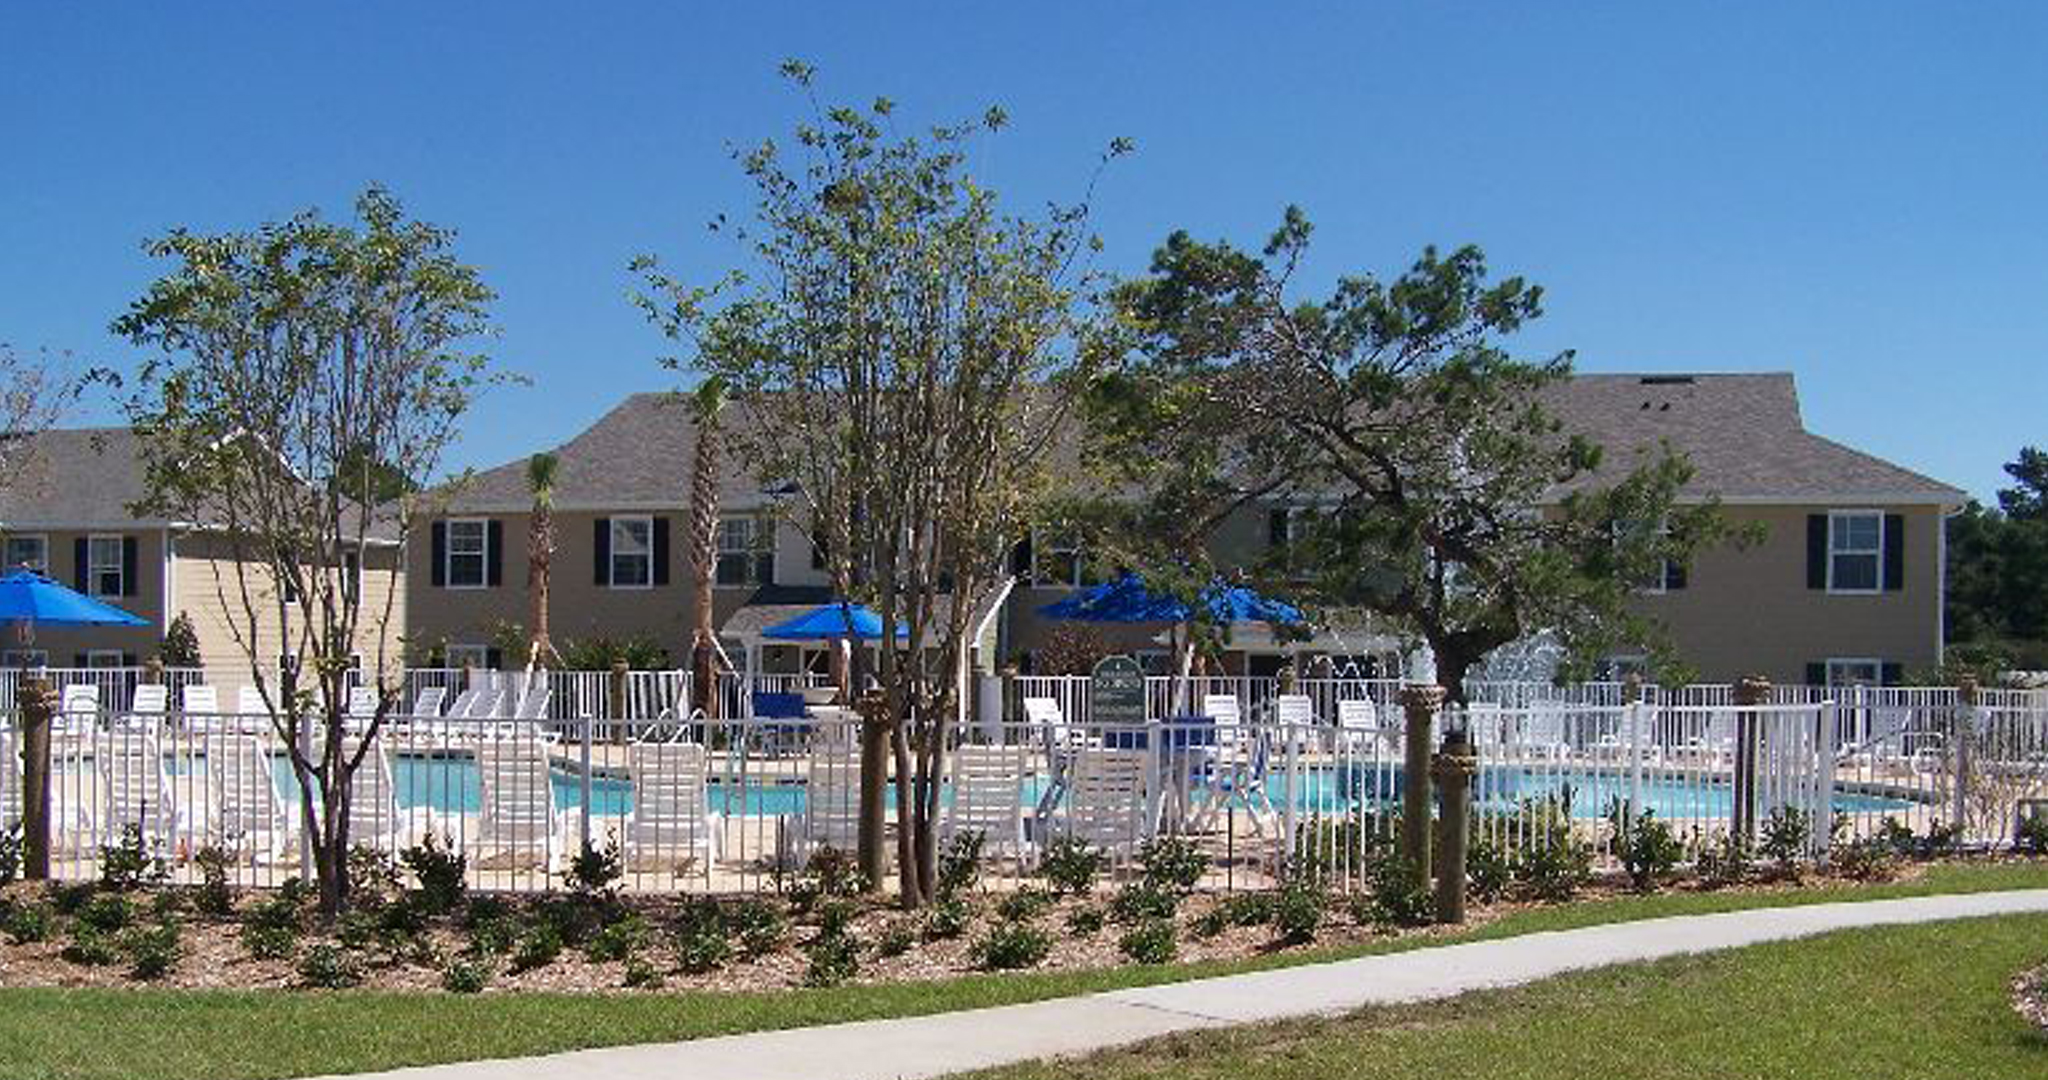 Bask in the sunshine at the pool area in your corporate housing rental in Panama City Beach.